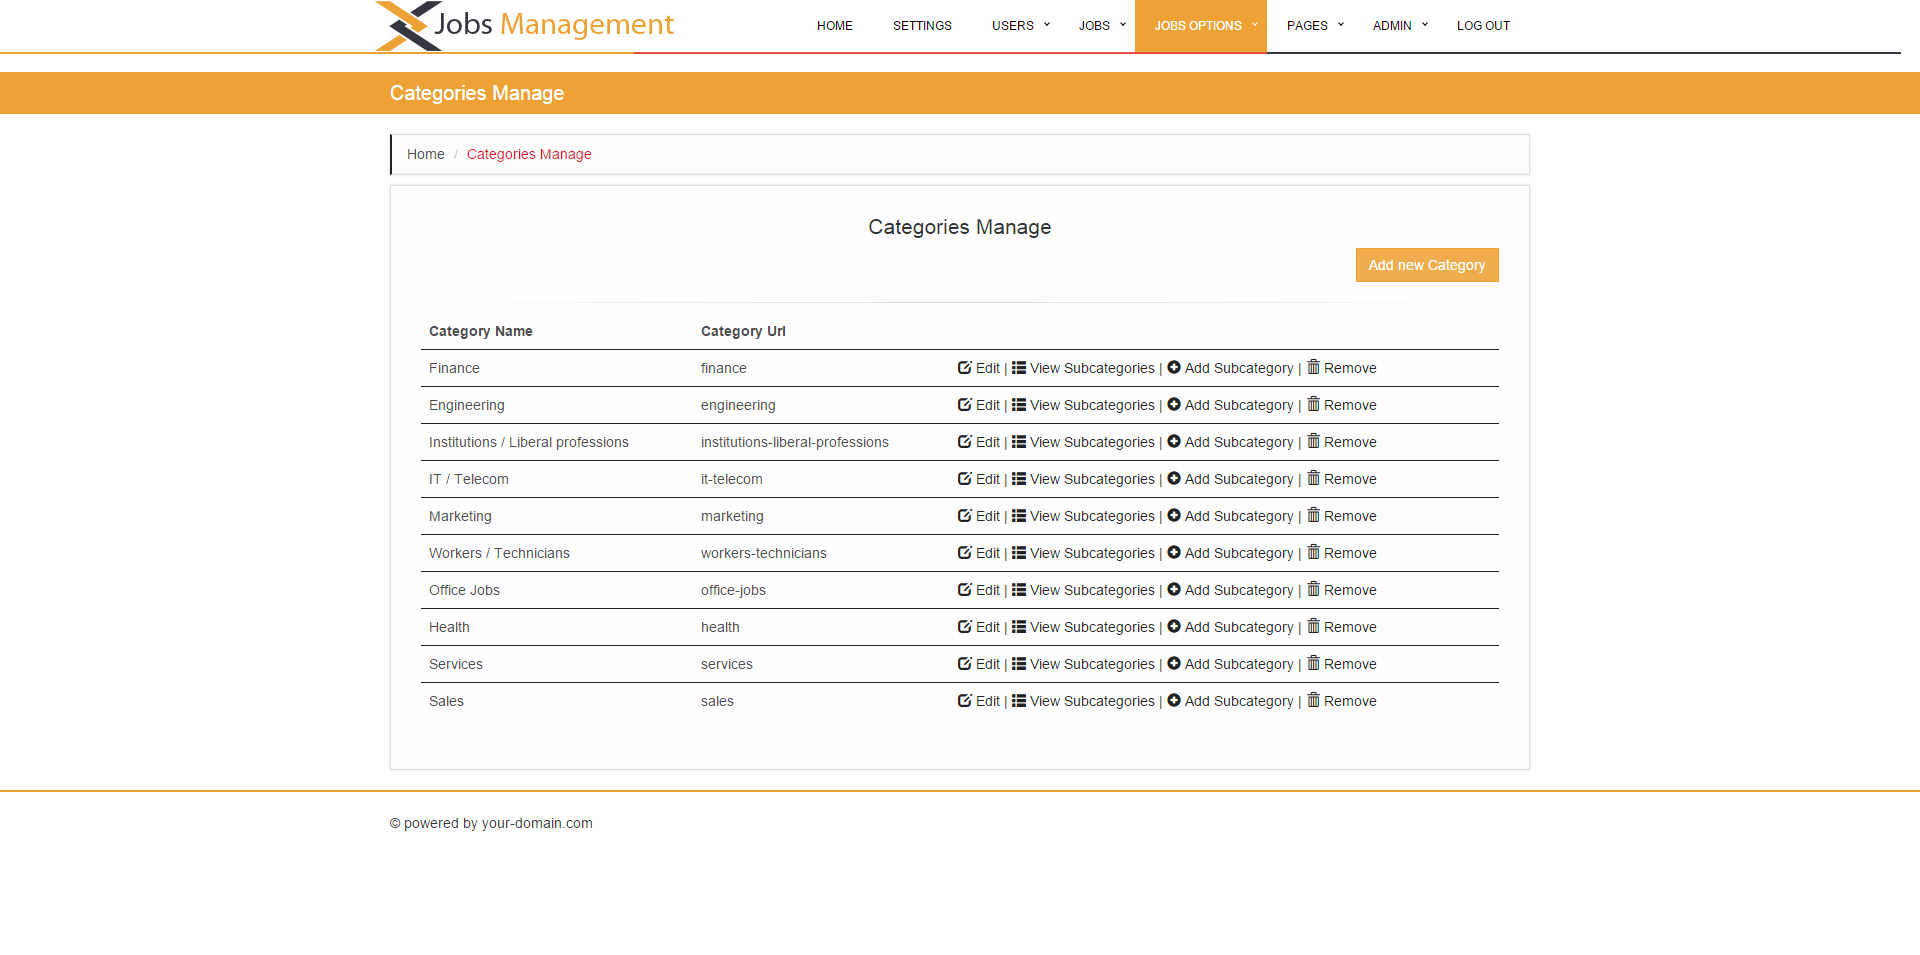 Jobs Management by -uMarian- | CodeCanyon